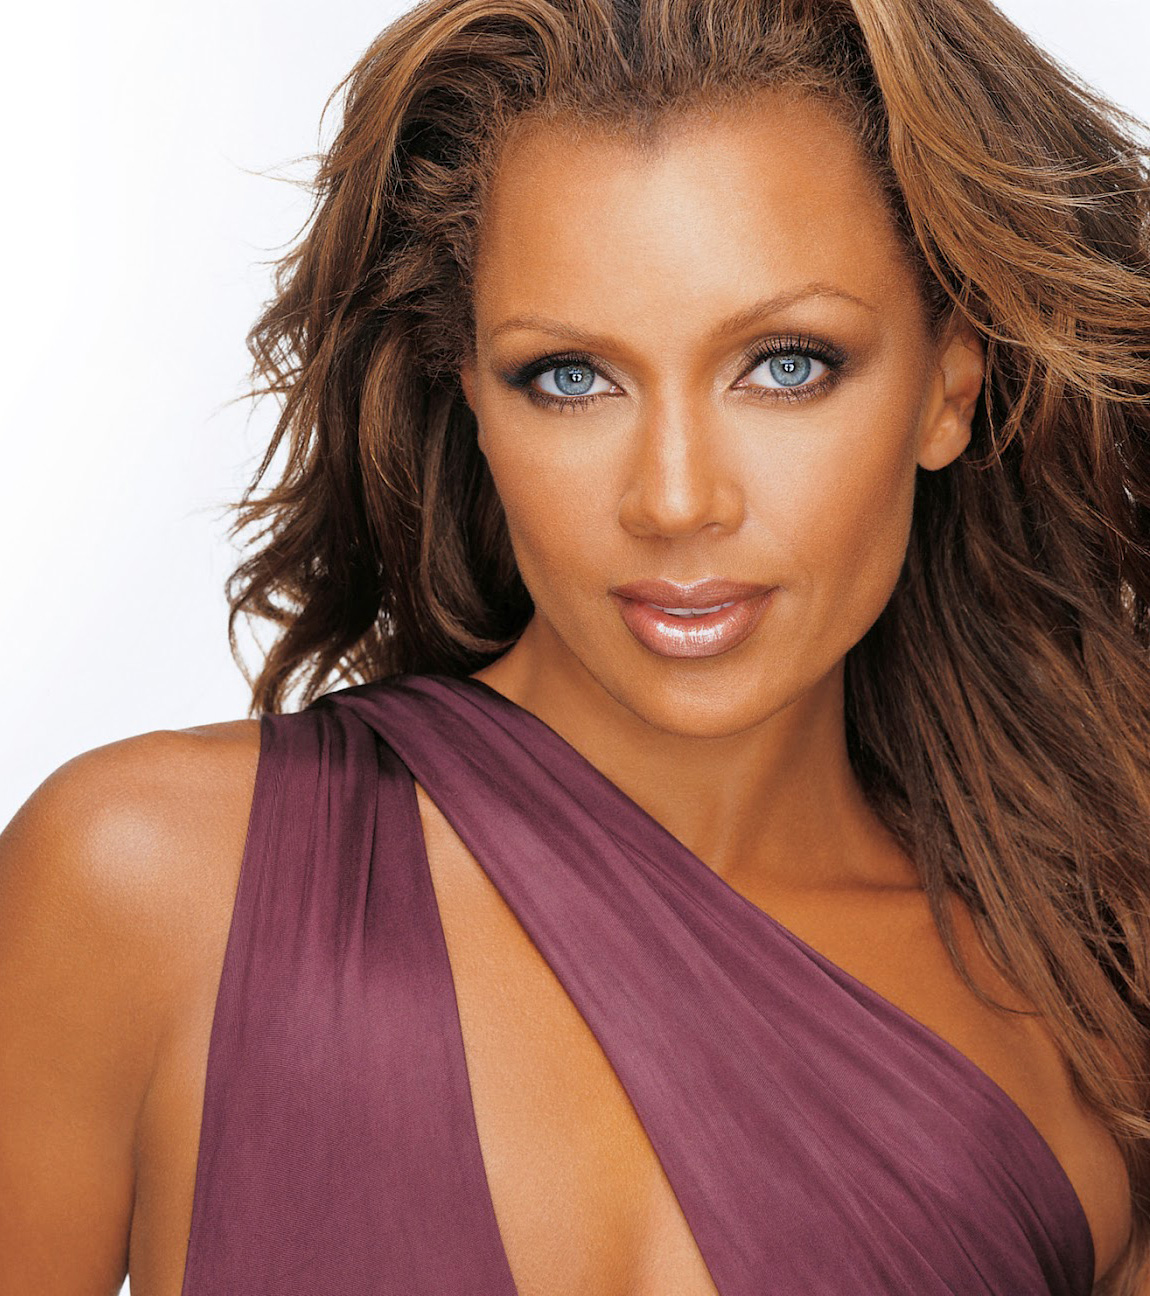 Vanessa Williams: Celebrity Nude Century: Vanessa Williams (Desperate